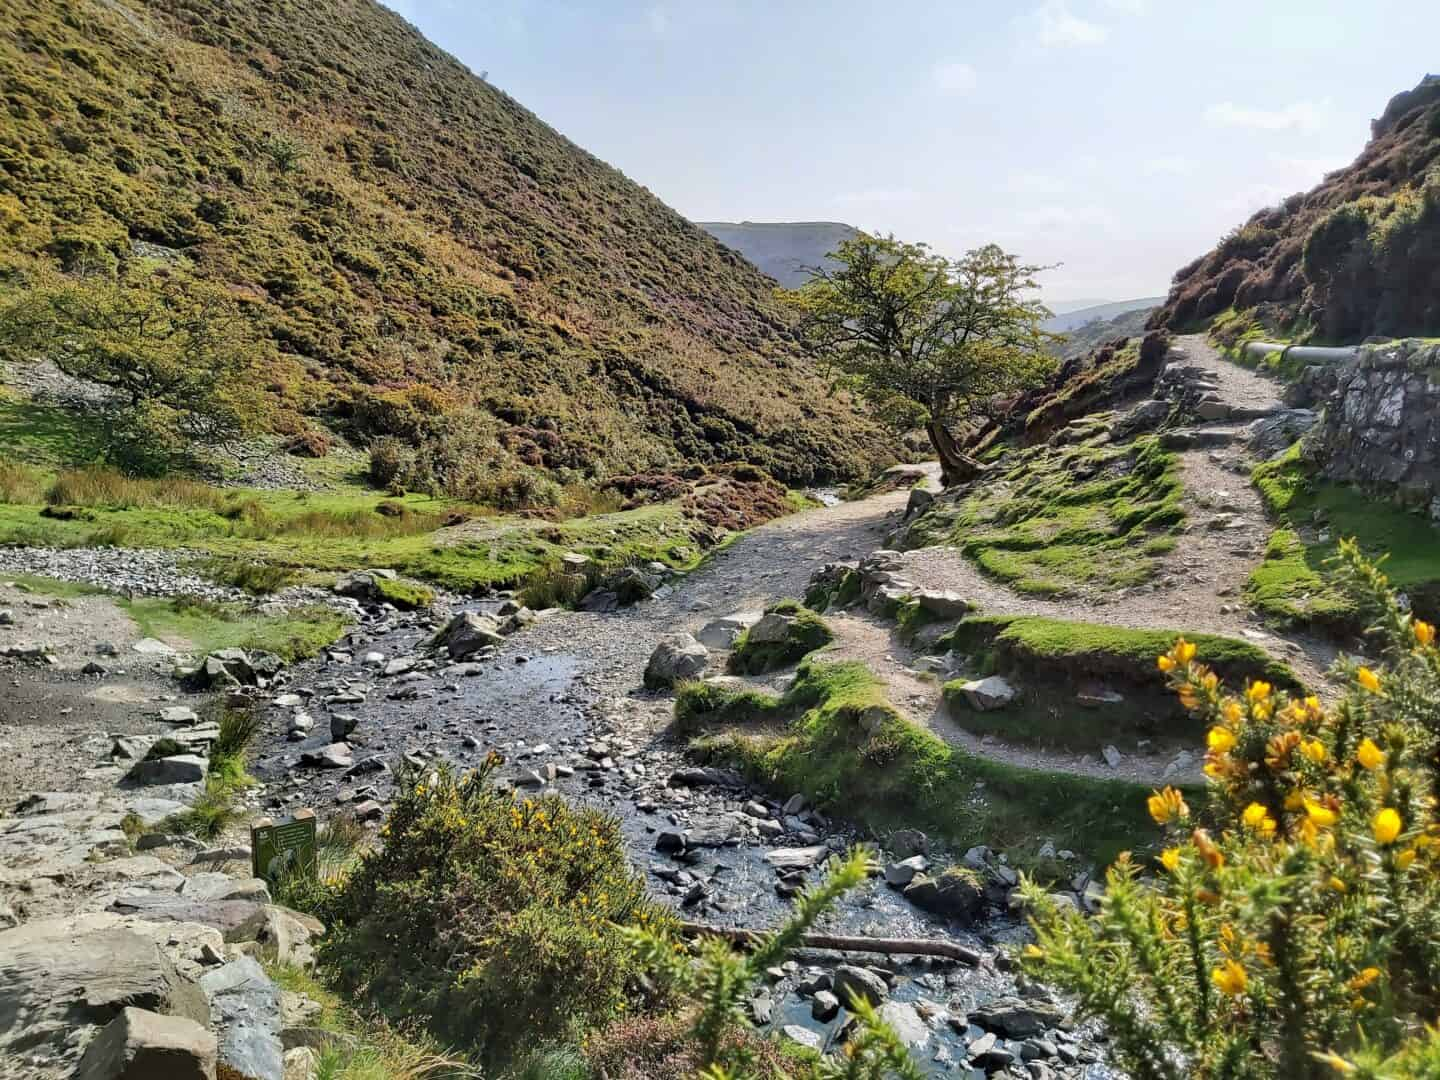 Offroad 1000 mile challenge path. Gorse bush in foreground with yellow flowers. Stream stretches away from it between two hills with another hill in the distance